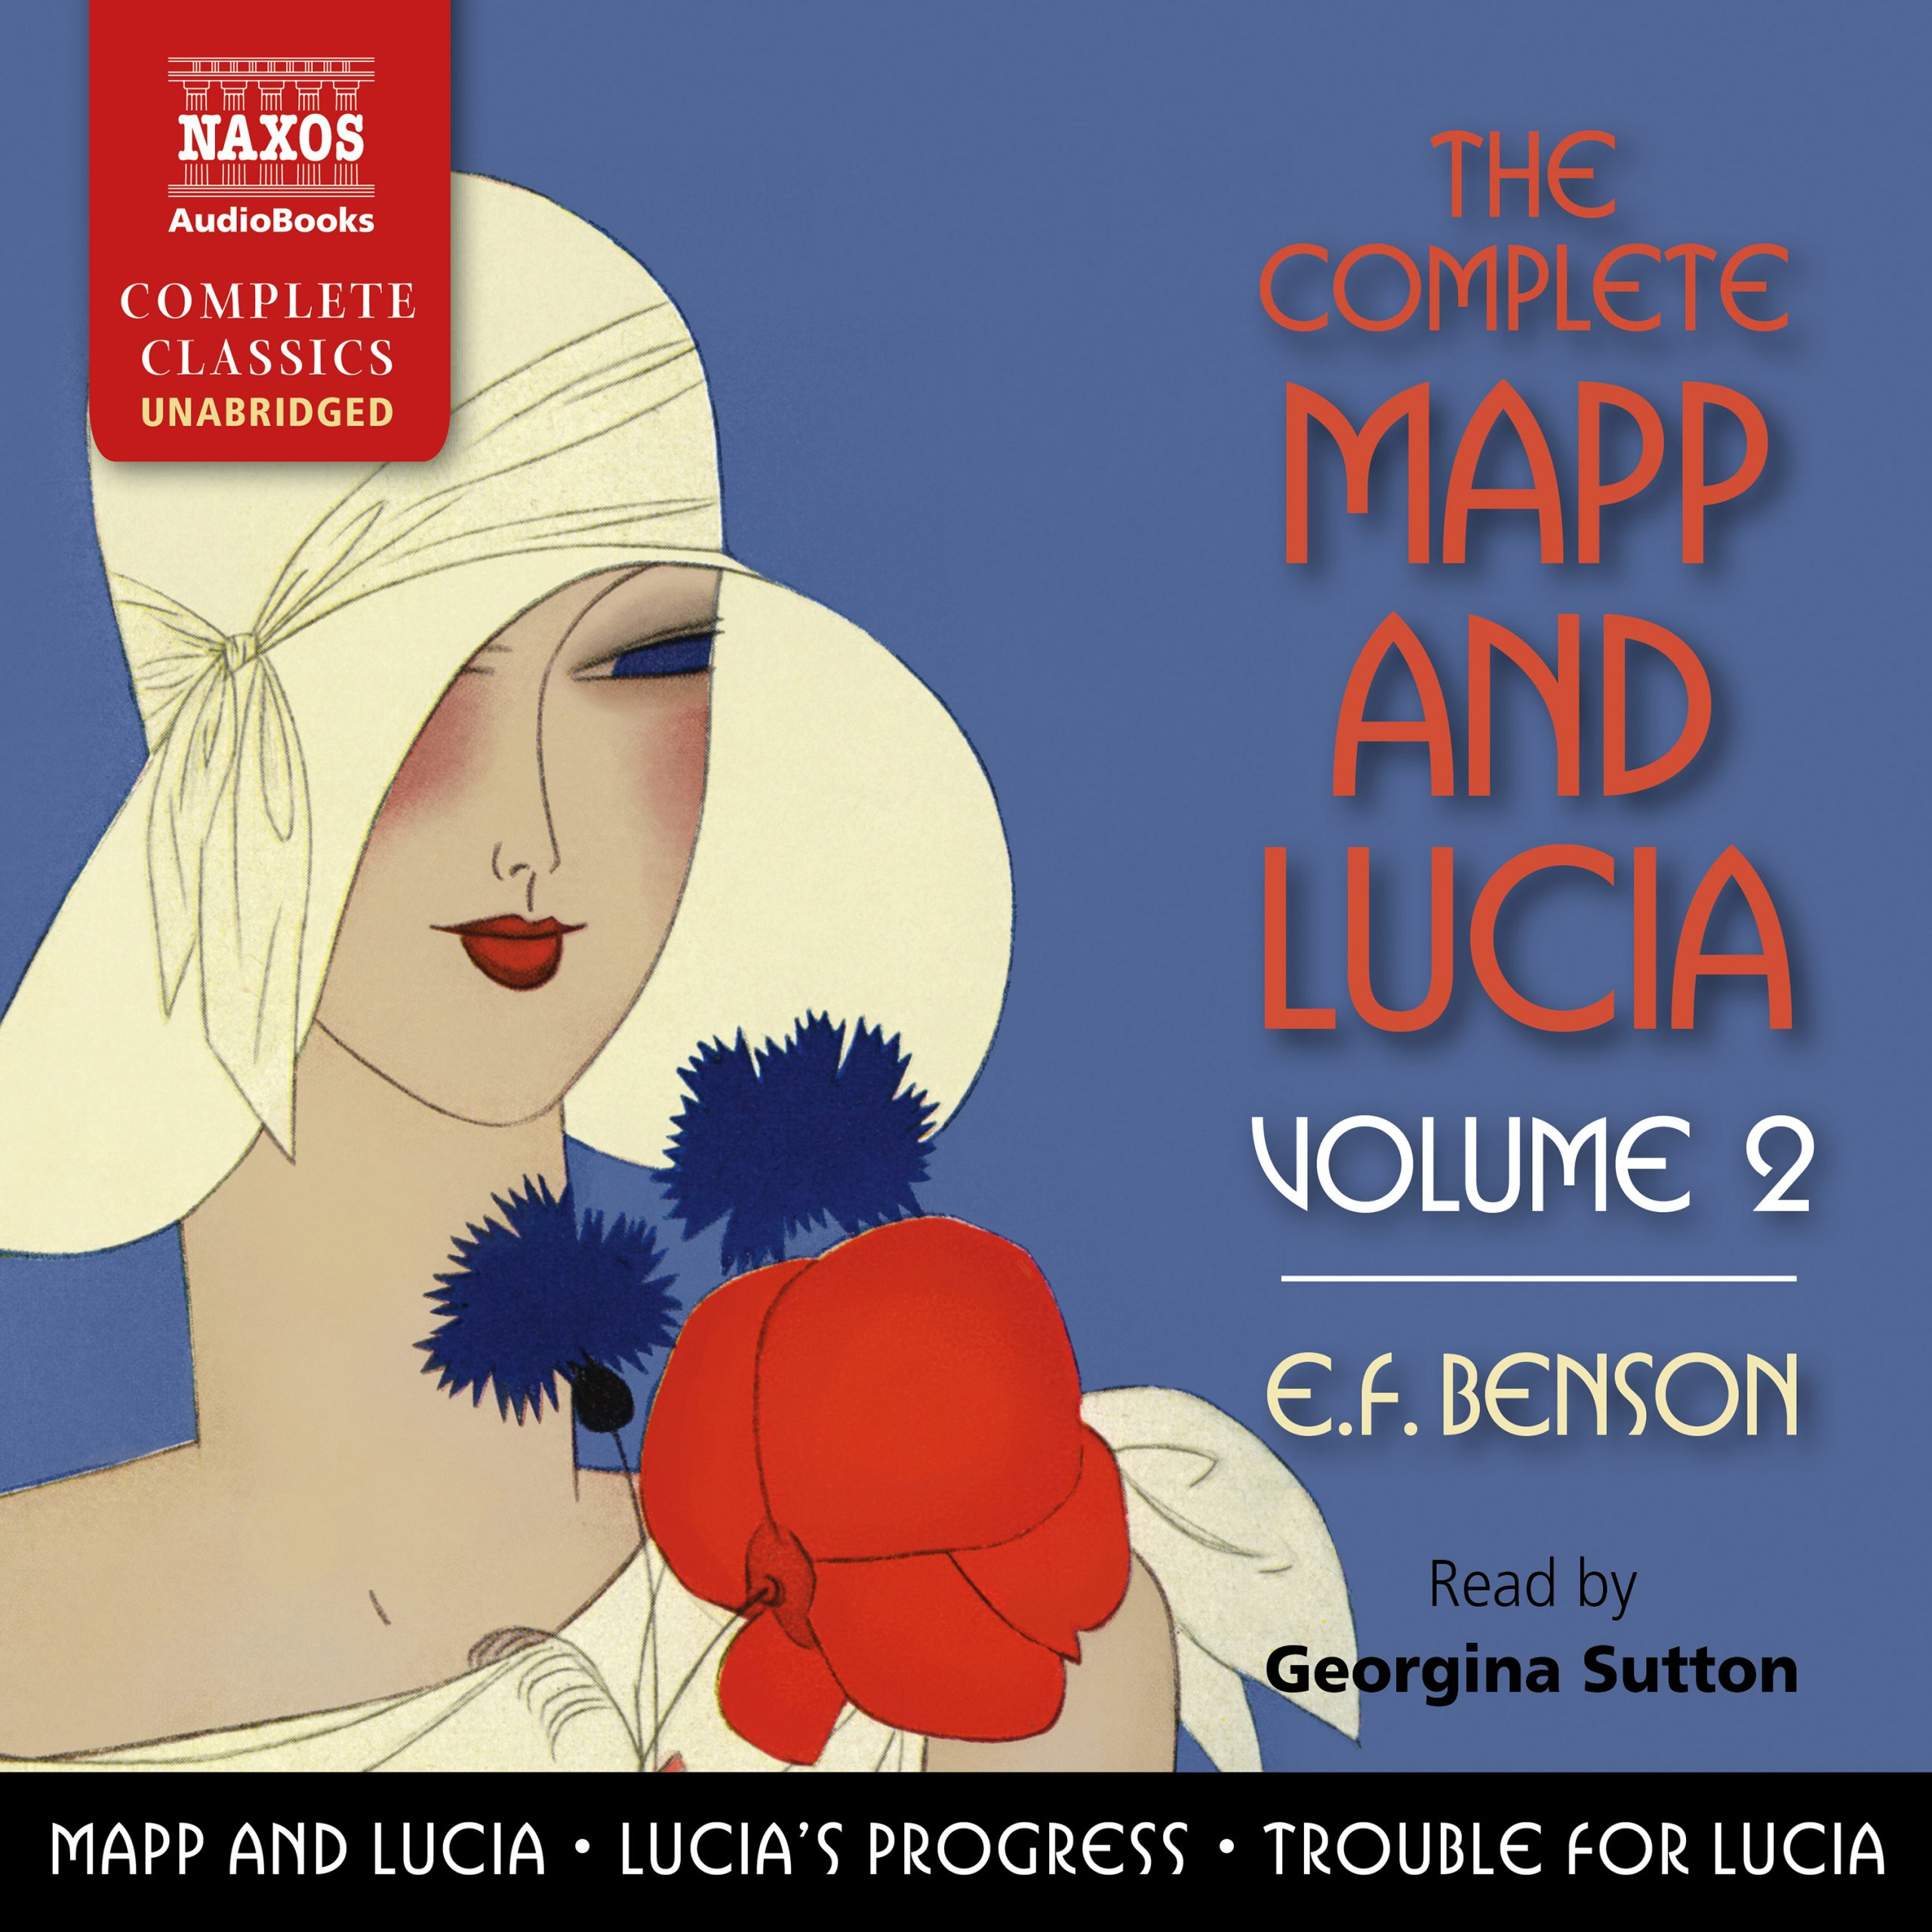 The Complete Mapp and Lucia, Volume 2 (unabridged)